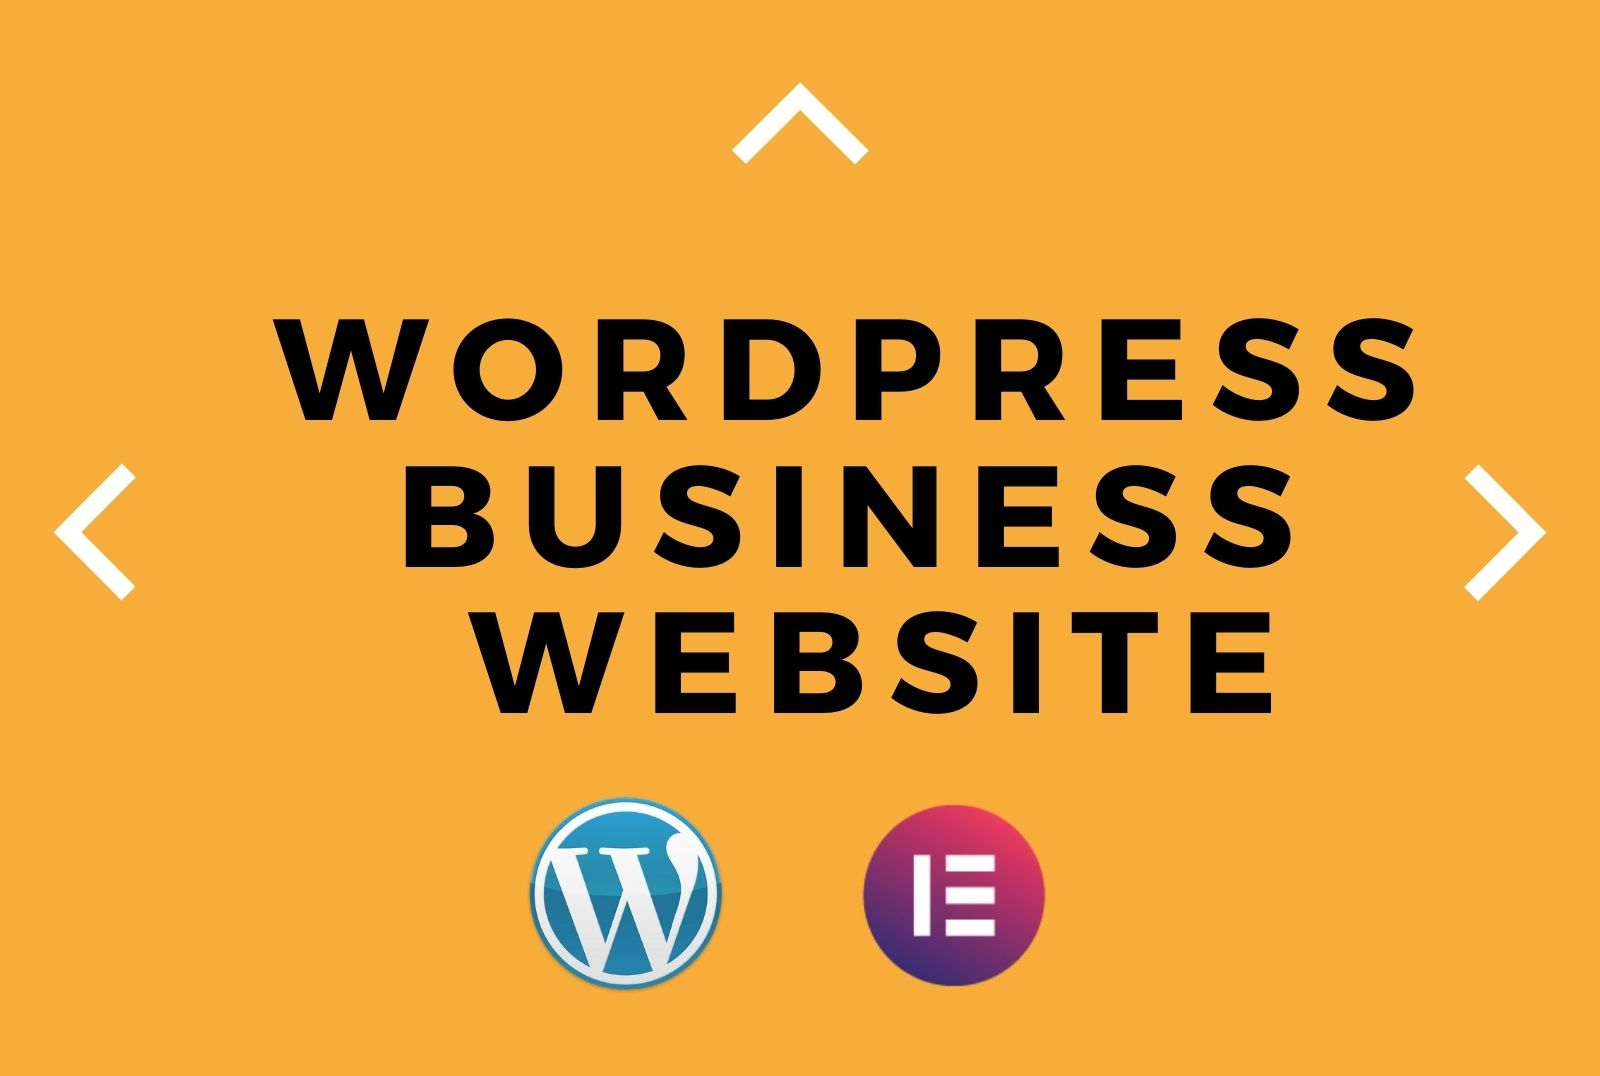 I will create your WordPress business website with elementor pro